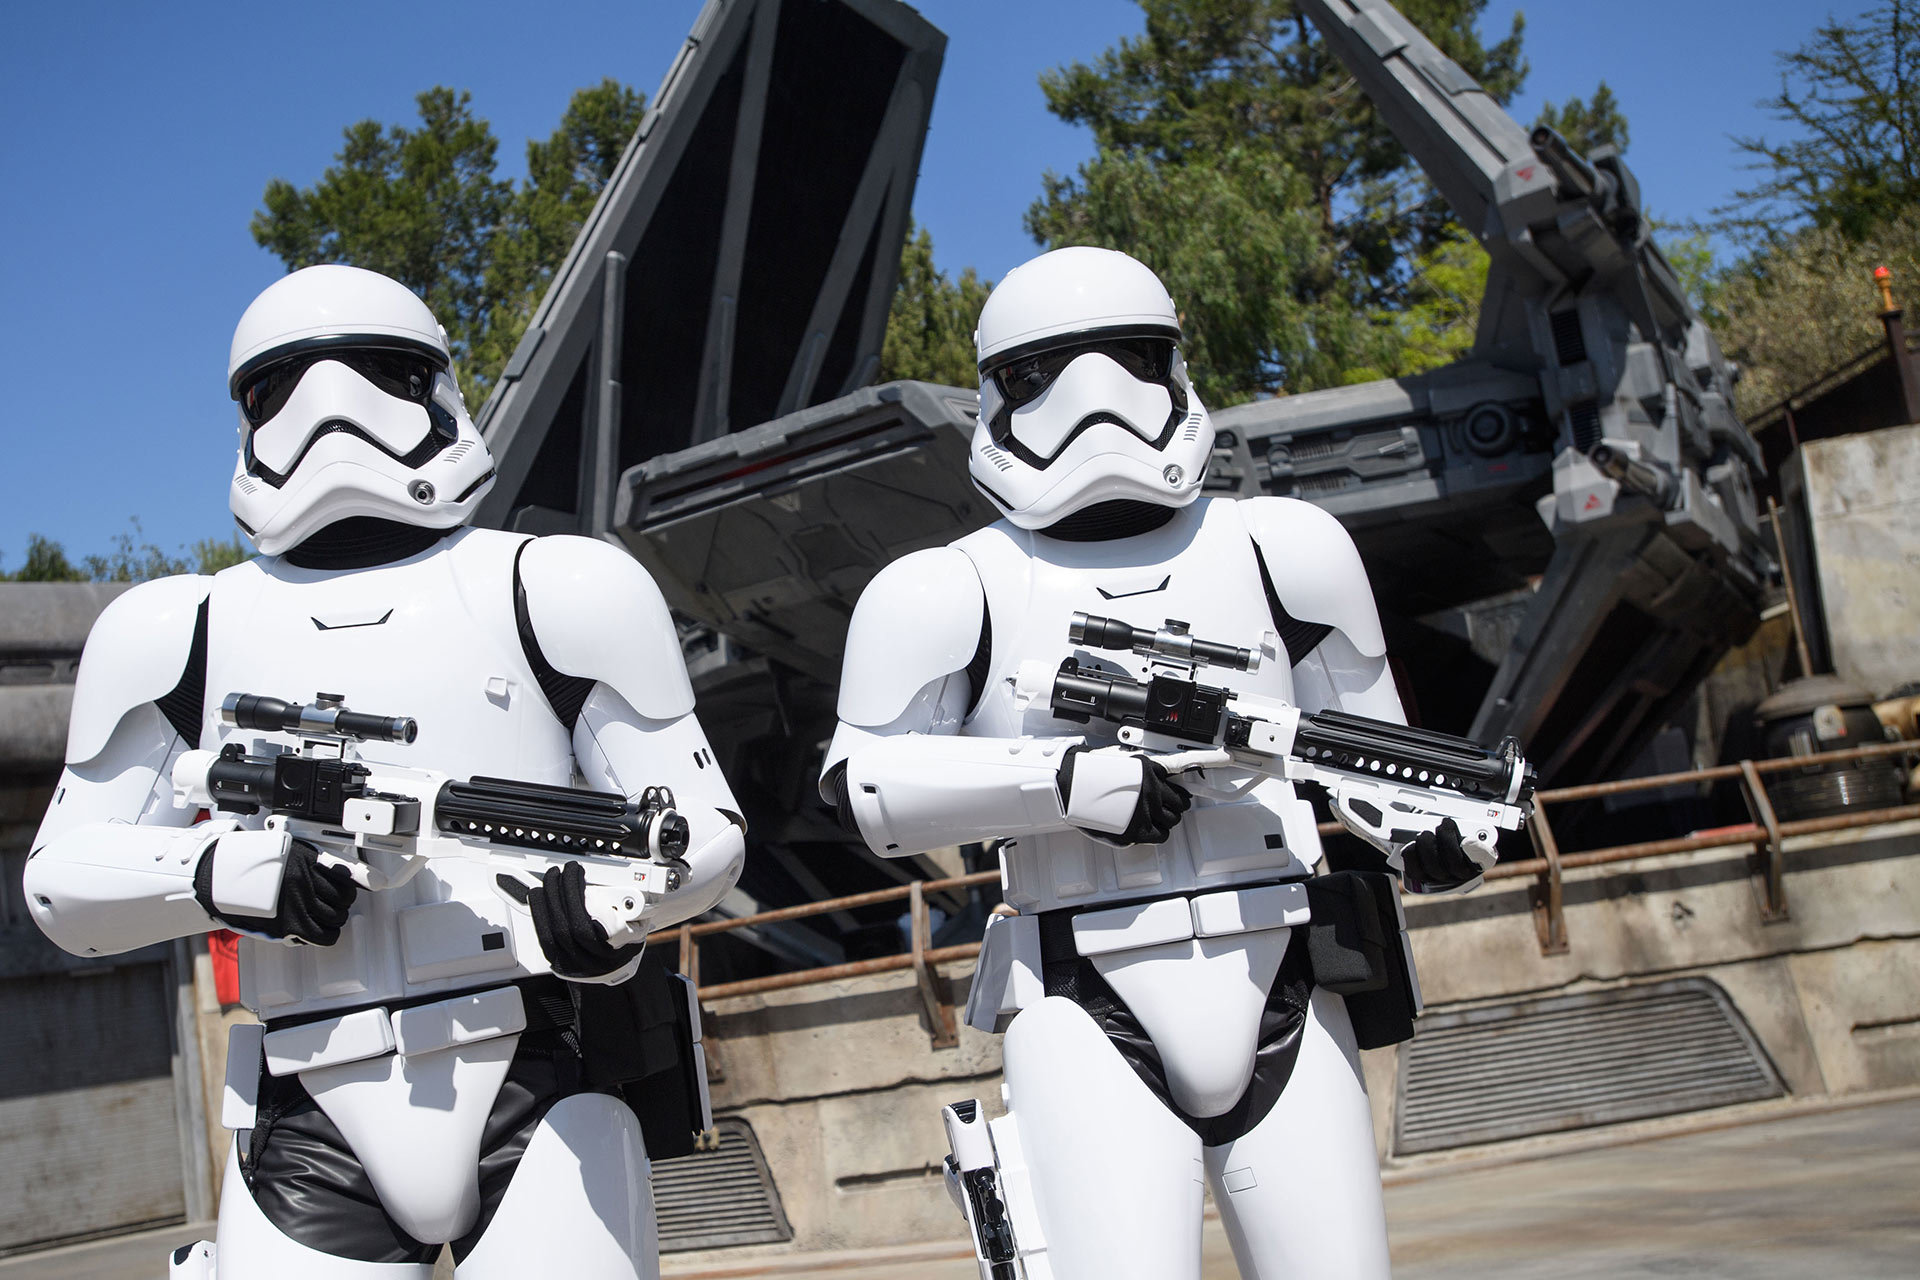 First Order stormtroopers patrol the grounds at Black Spire Outpost.